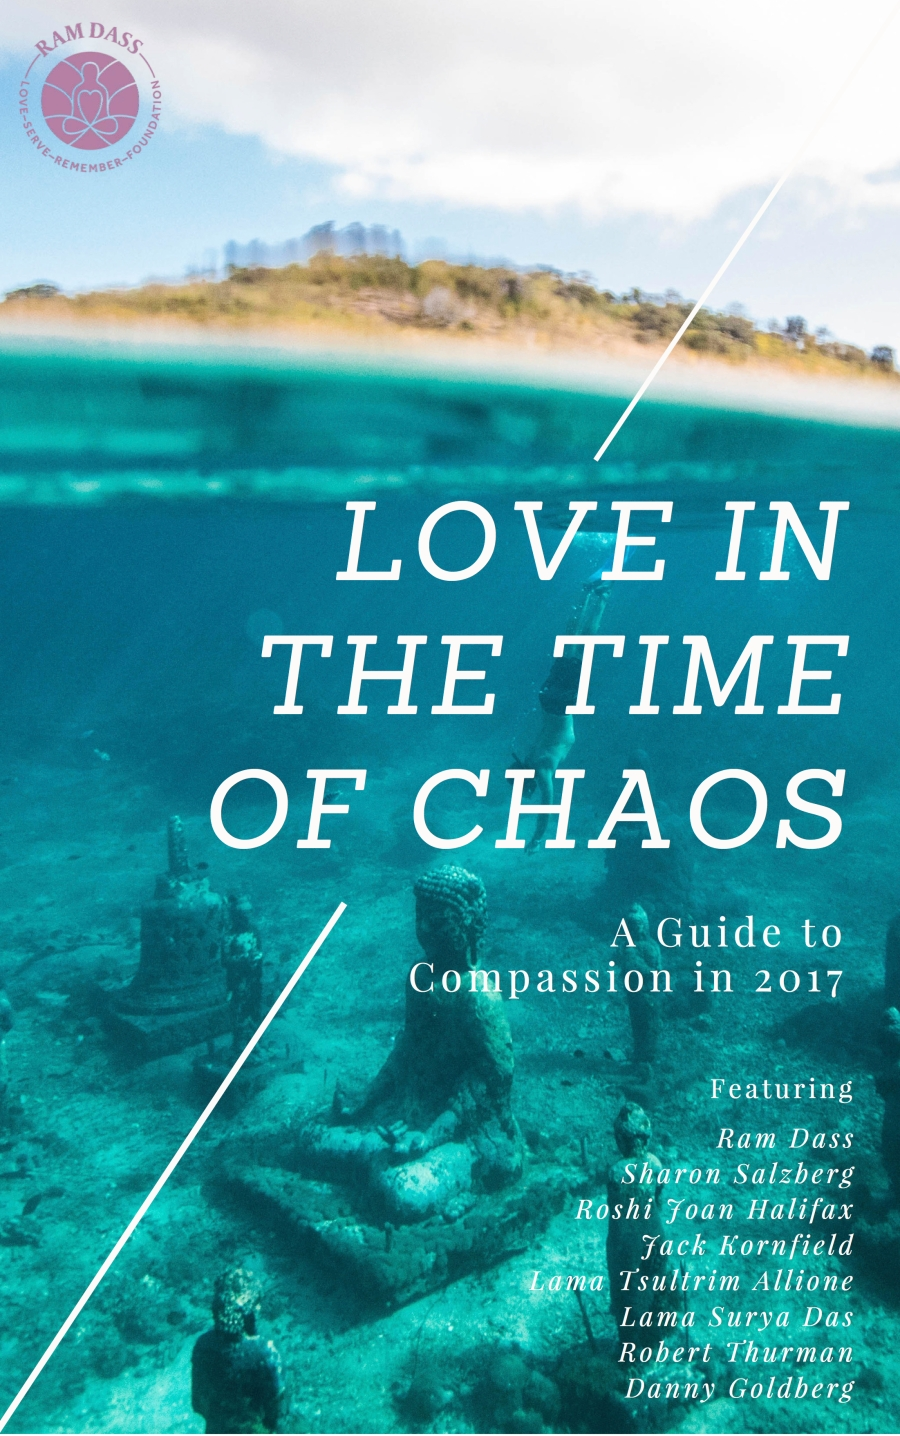 Love in the Time of Chaos (dragged).jpg